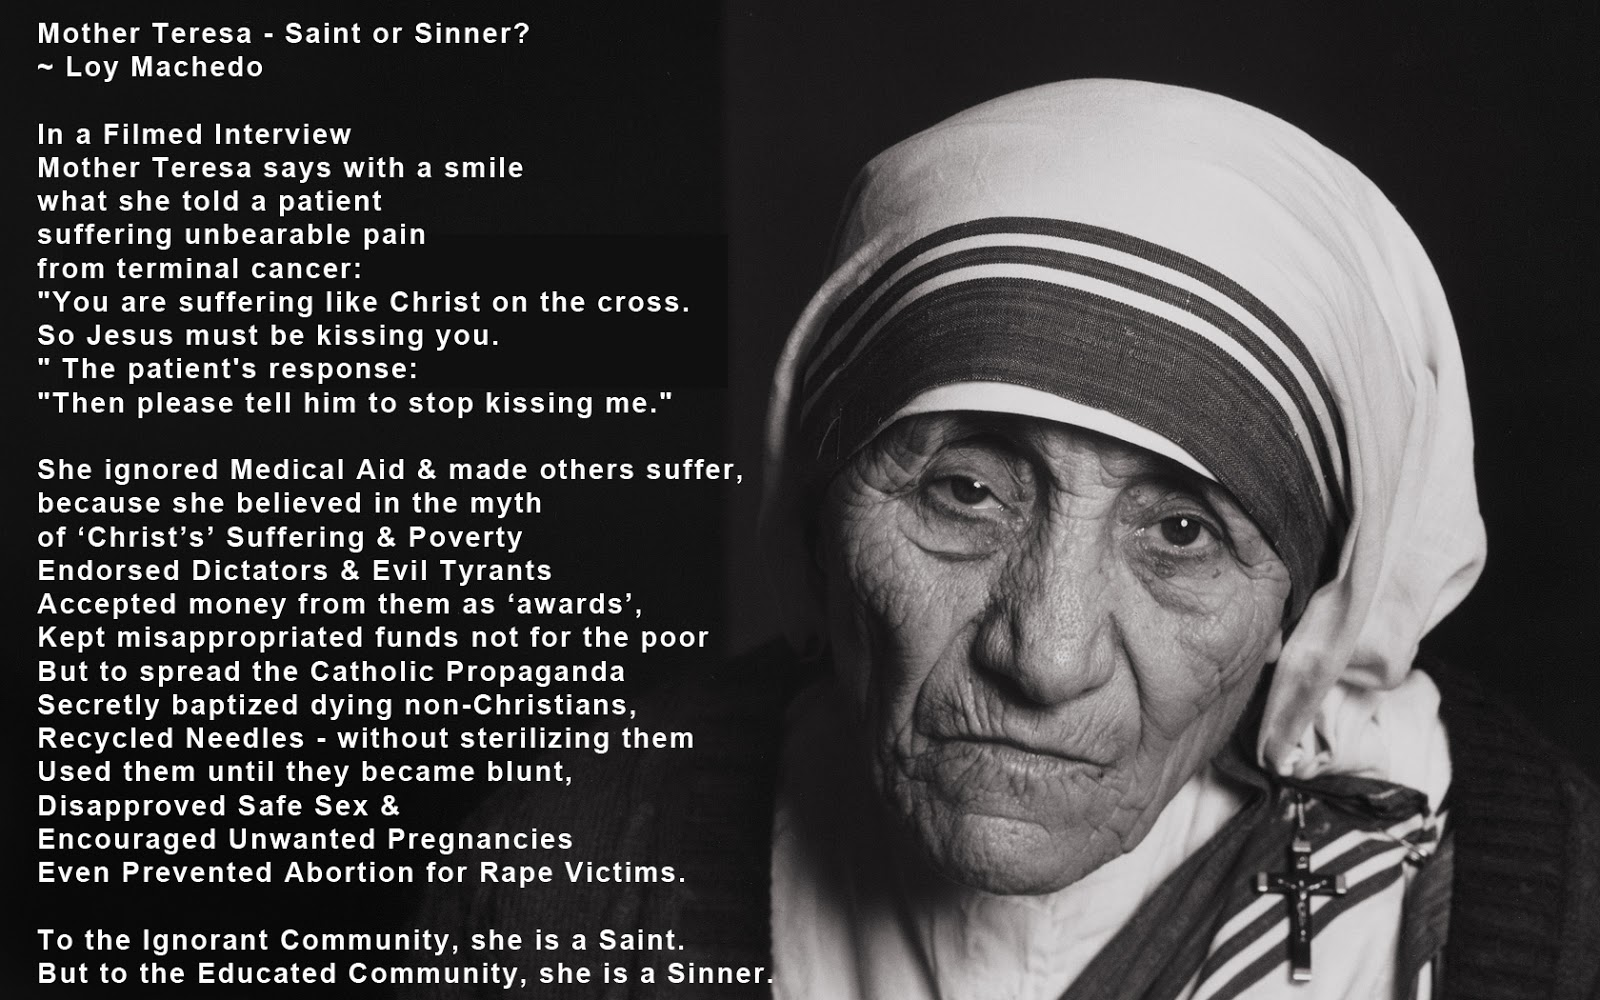 the influence of mother teresa On the occasion of mother teresa's 104th birthday, we look at the many high-profile humanitarians, musicians, athletes and others who have acted under her influence.